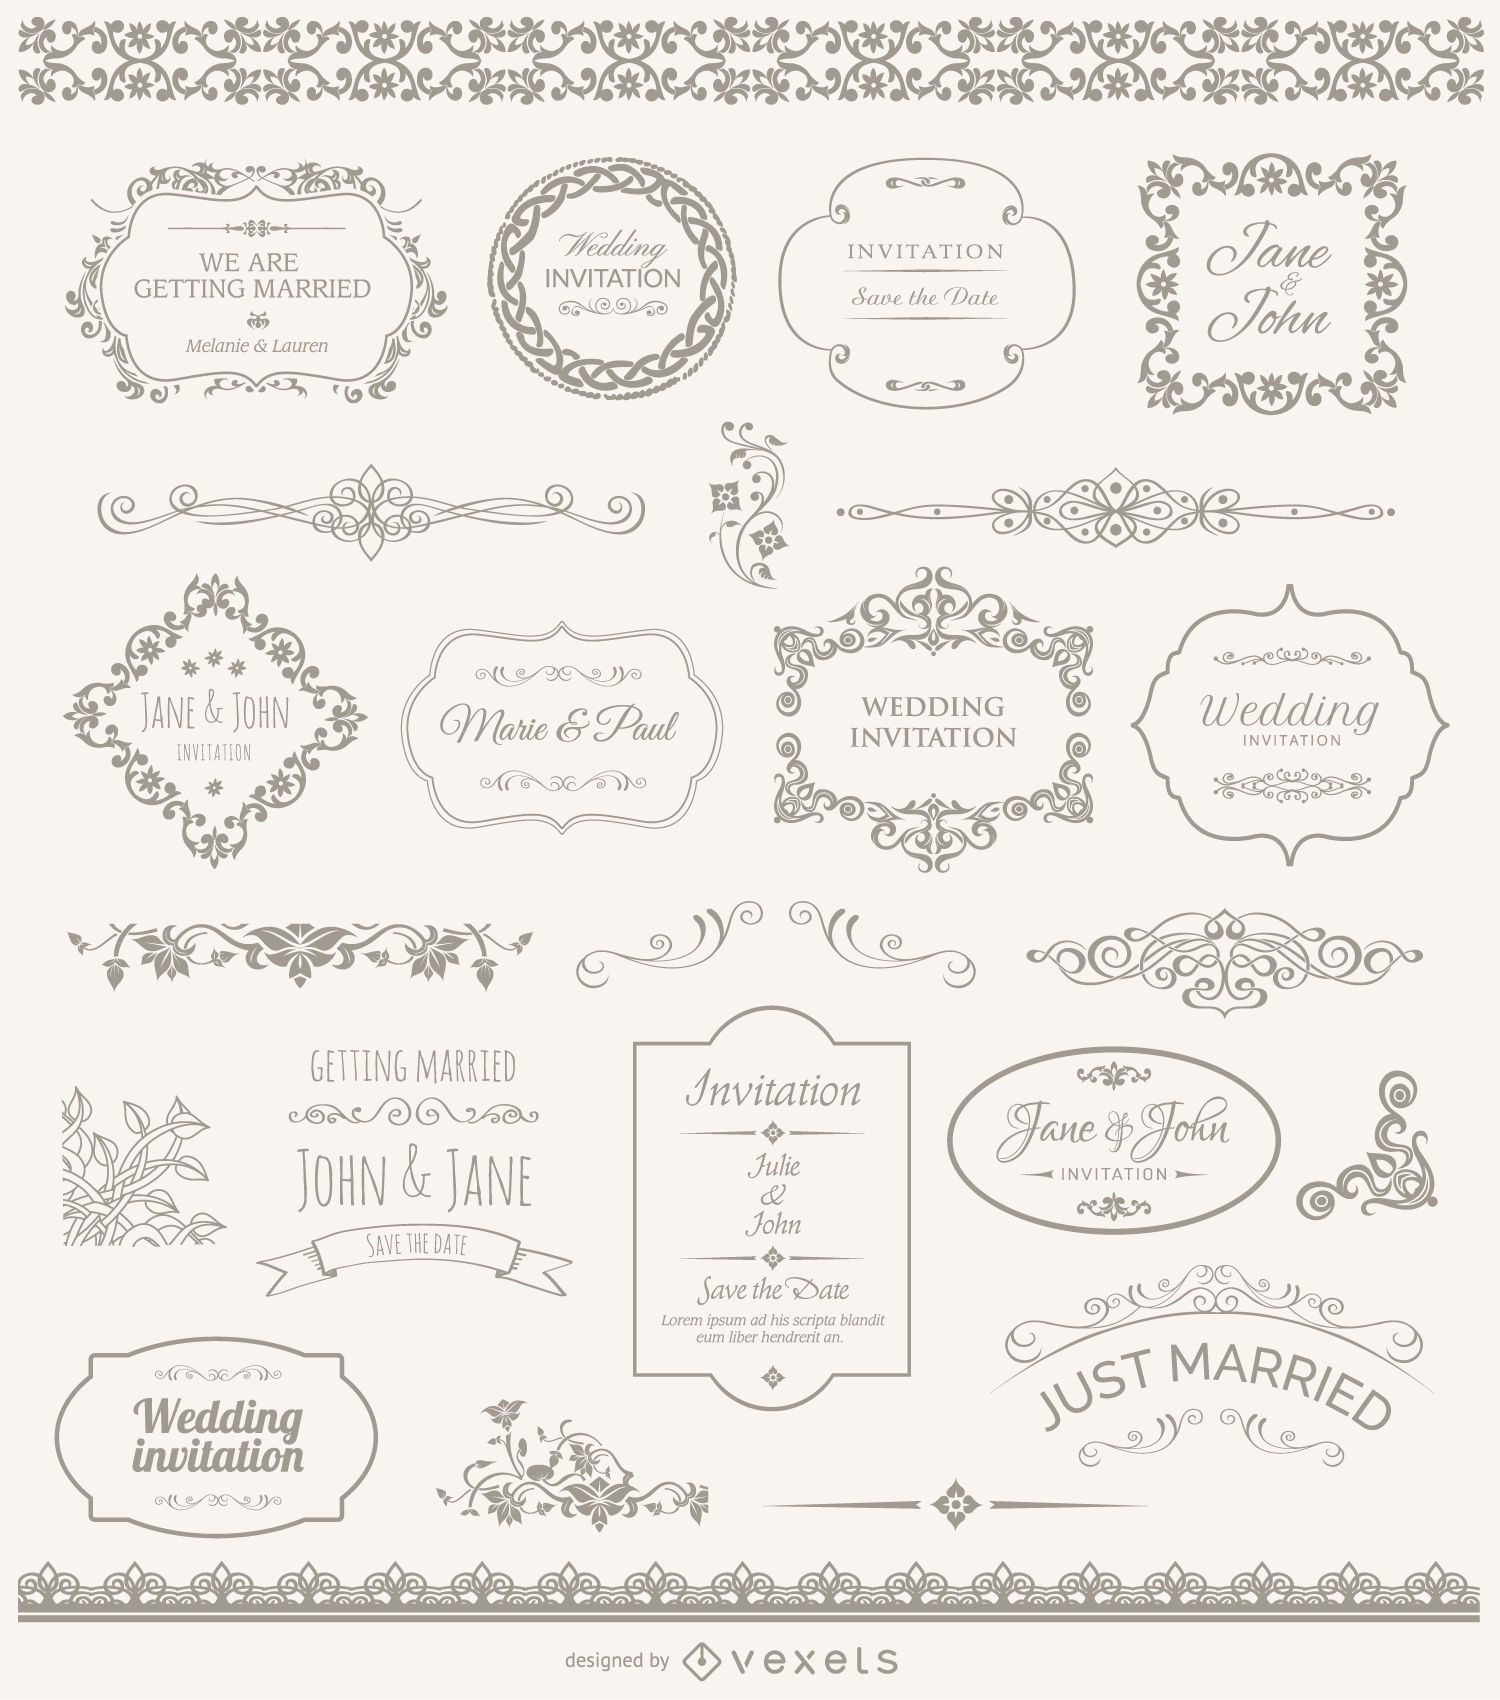 Wedding ornaments - Wedding Frames Badges And Ornaments Download Large Image 1031x1167px